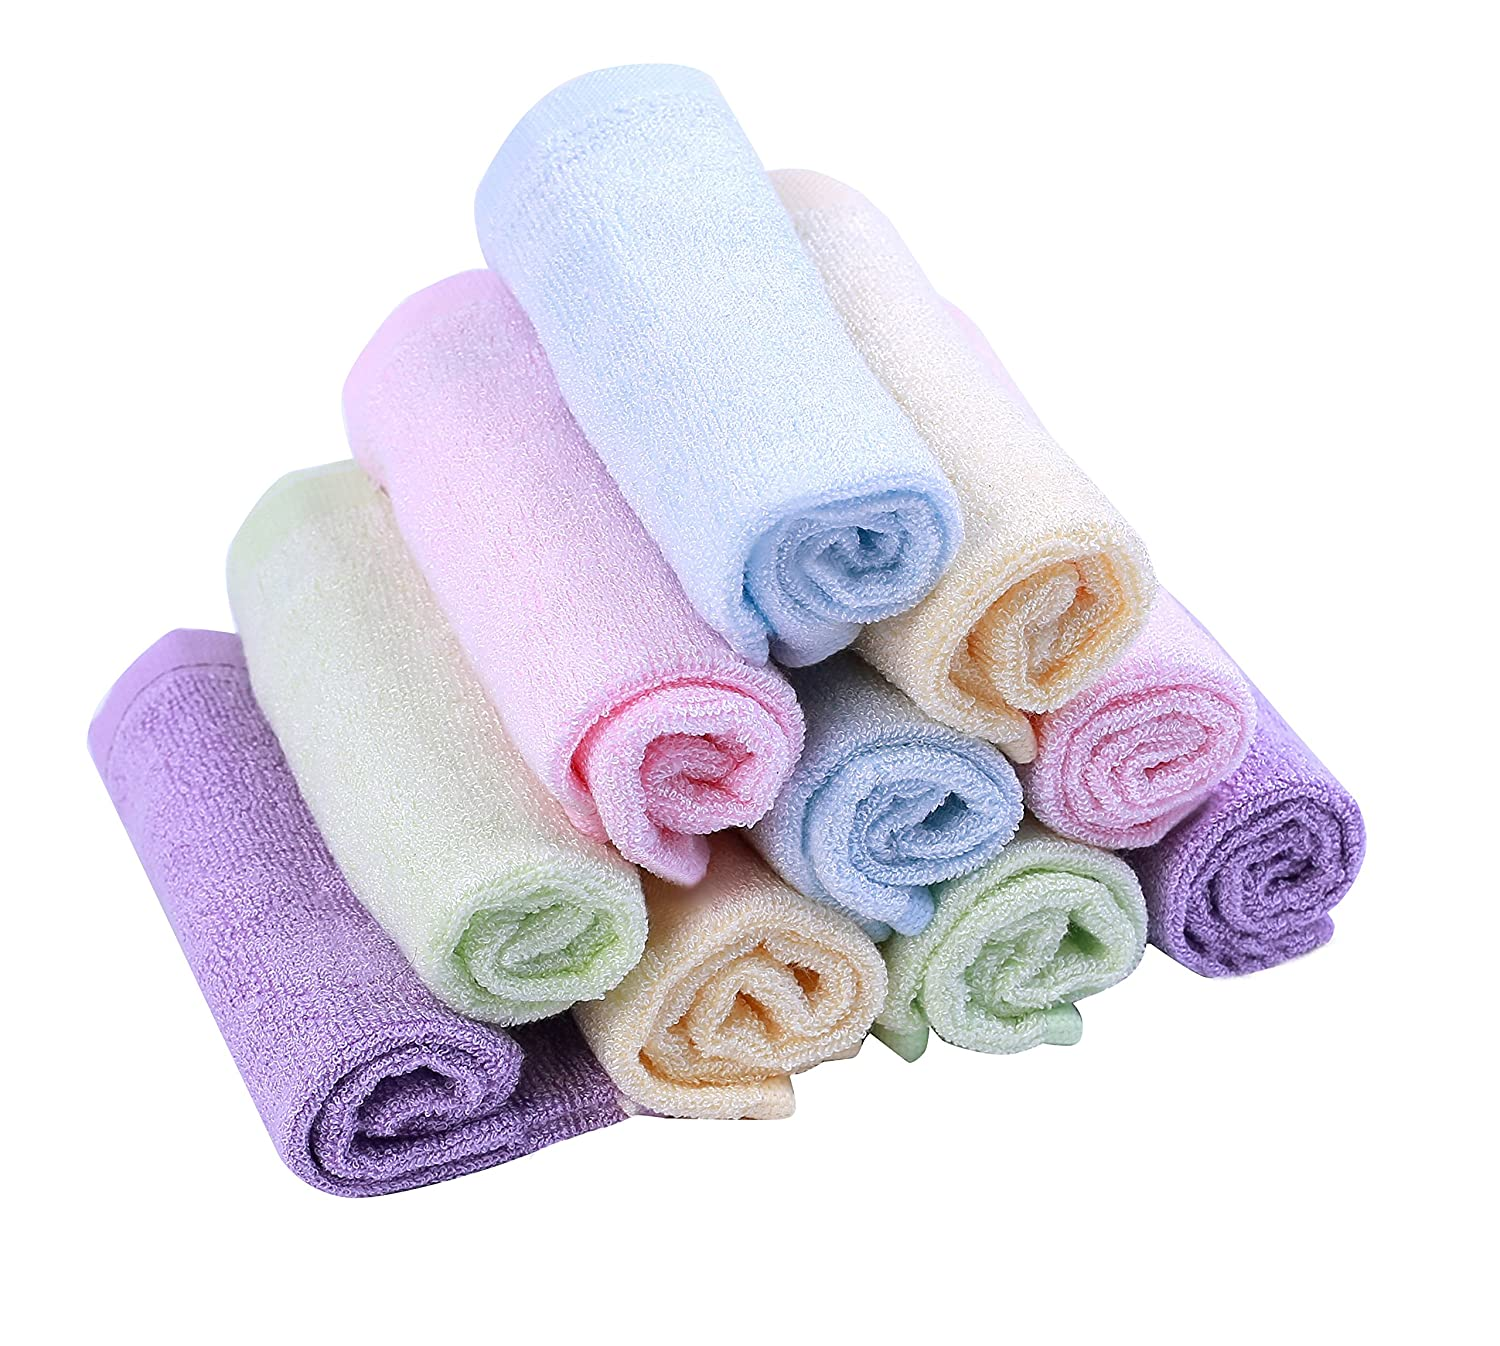 Moolecole Bamboo Fiber Baby Washcloths Extra Soft Towel for Baby's Sensitive Skin Absorbent and Reusable Baby Wipes Excellent Baby Gift Set, 10-pack